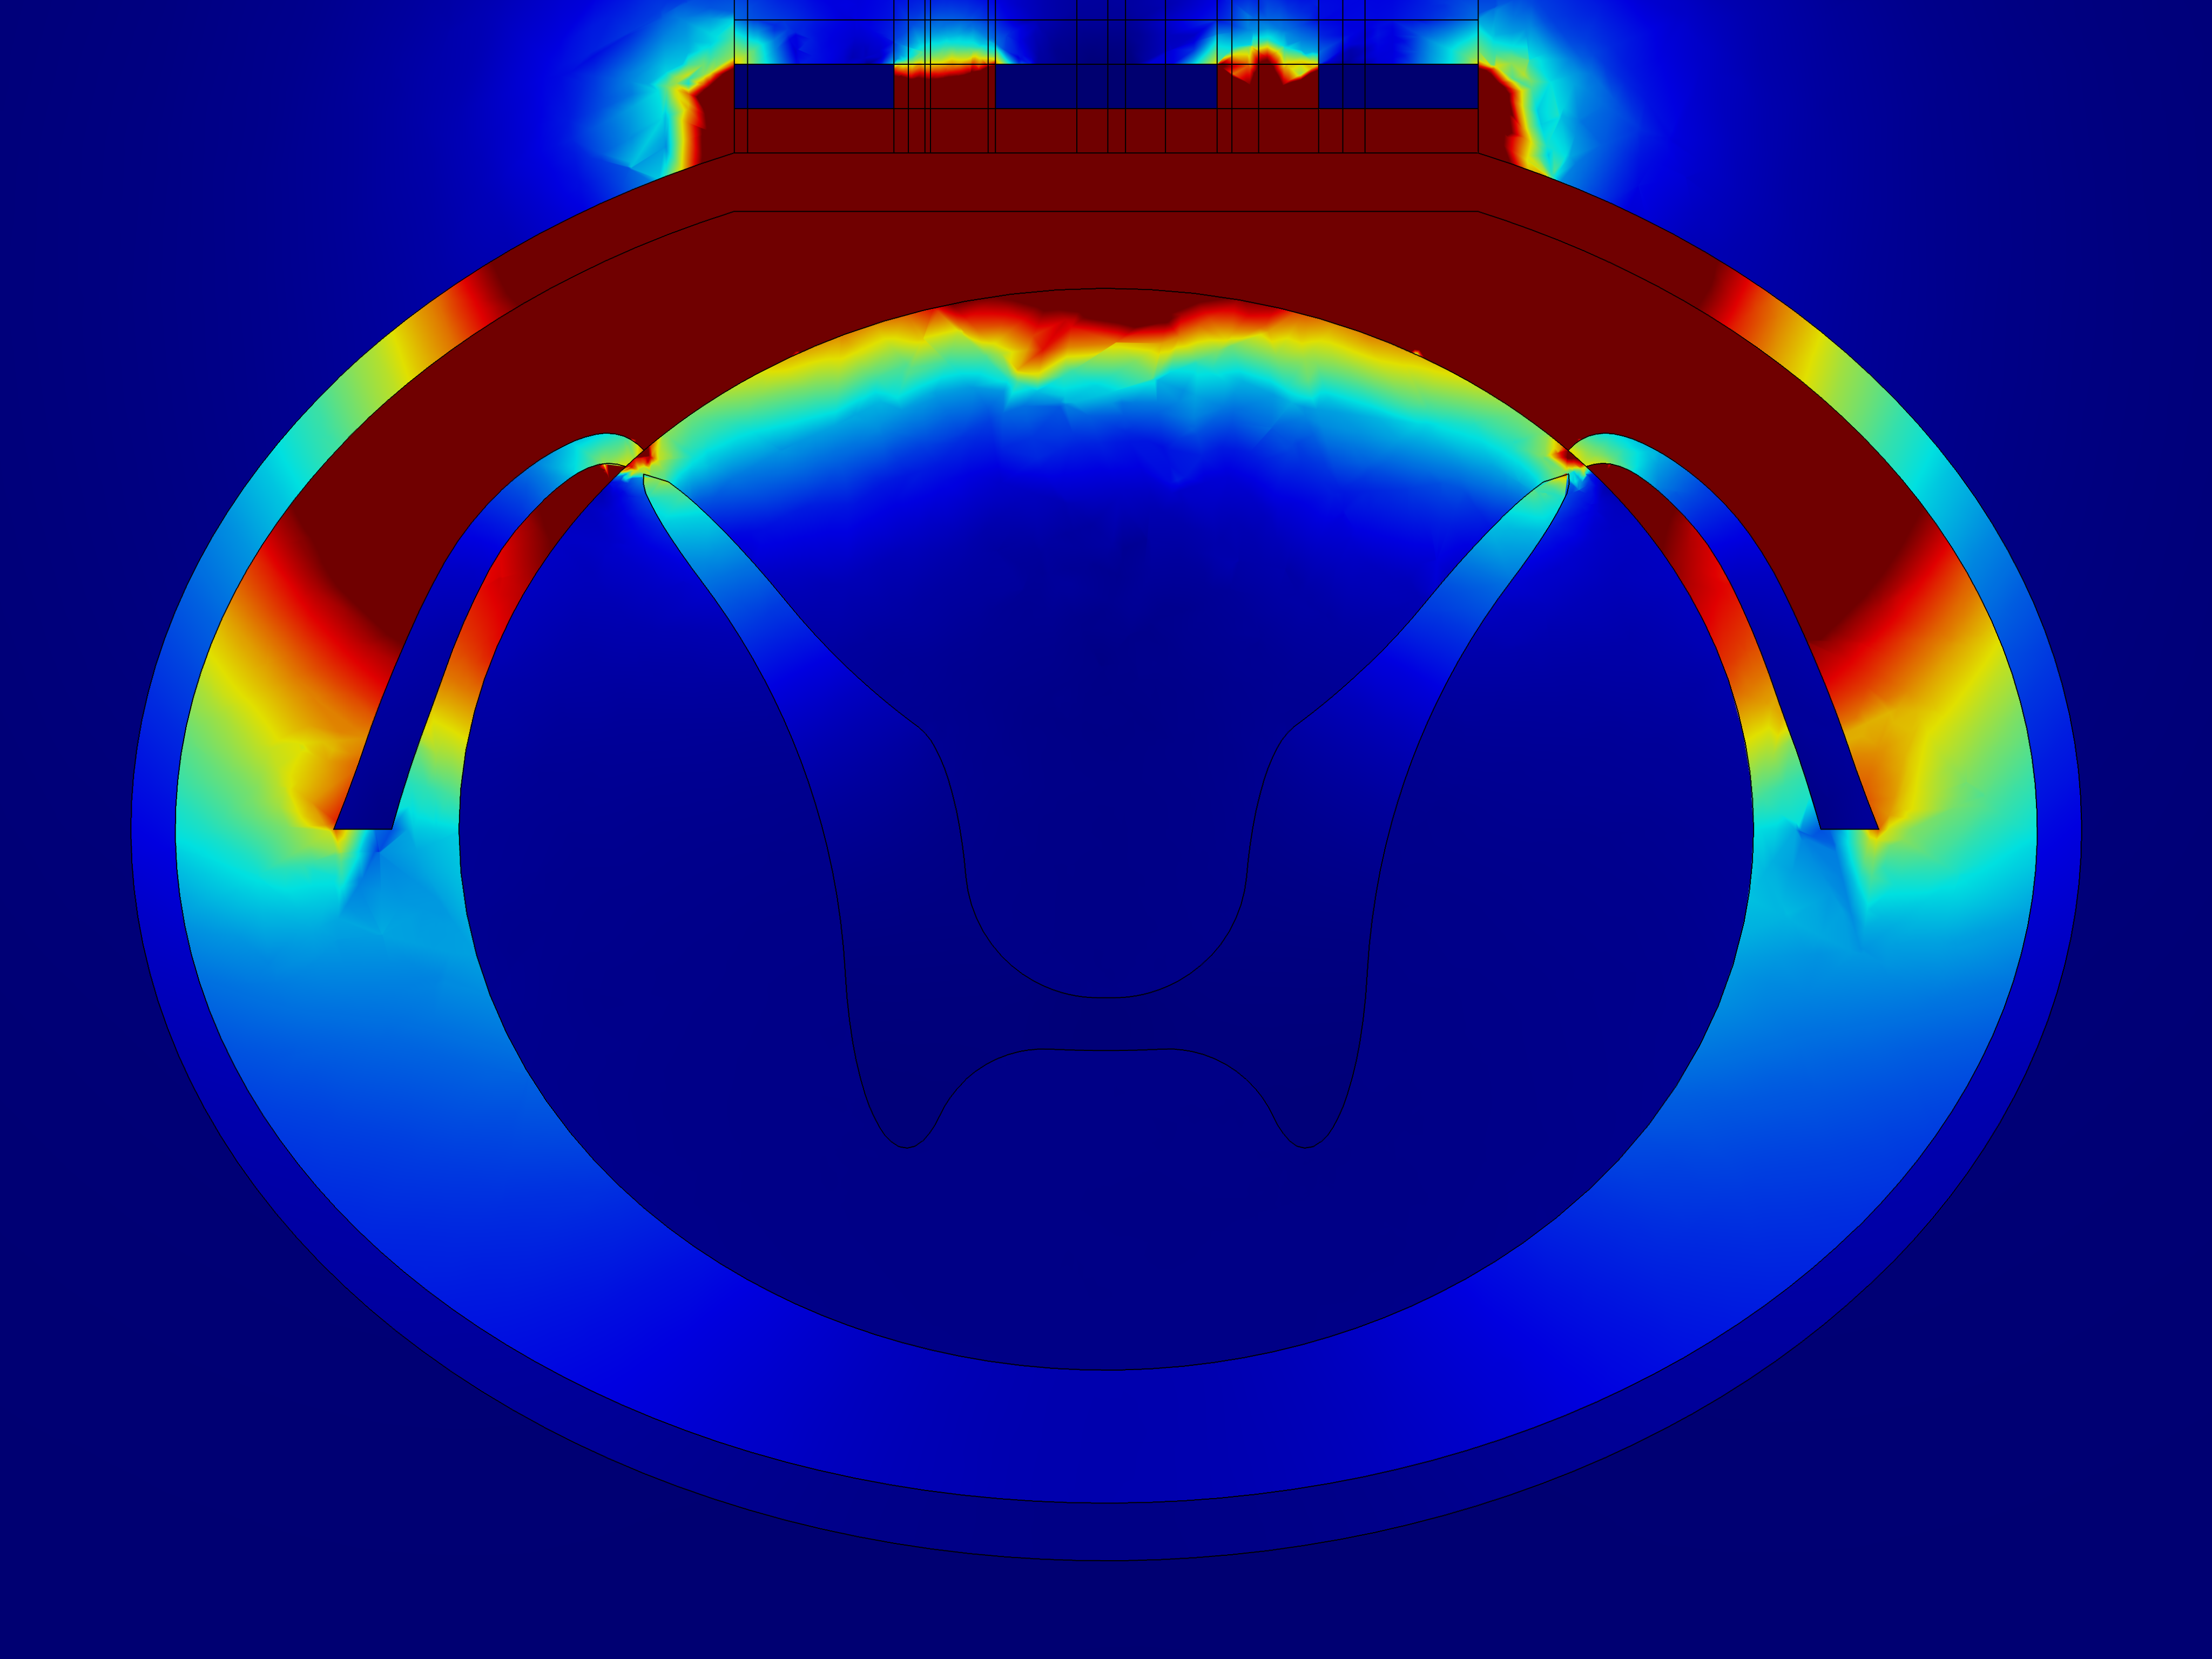 Control slice current density norm xz view, COMSOL Multiphysics